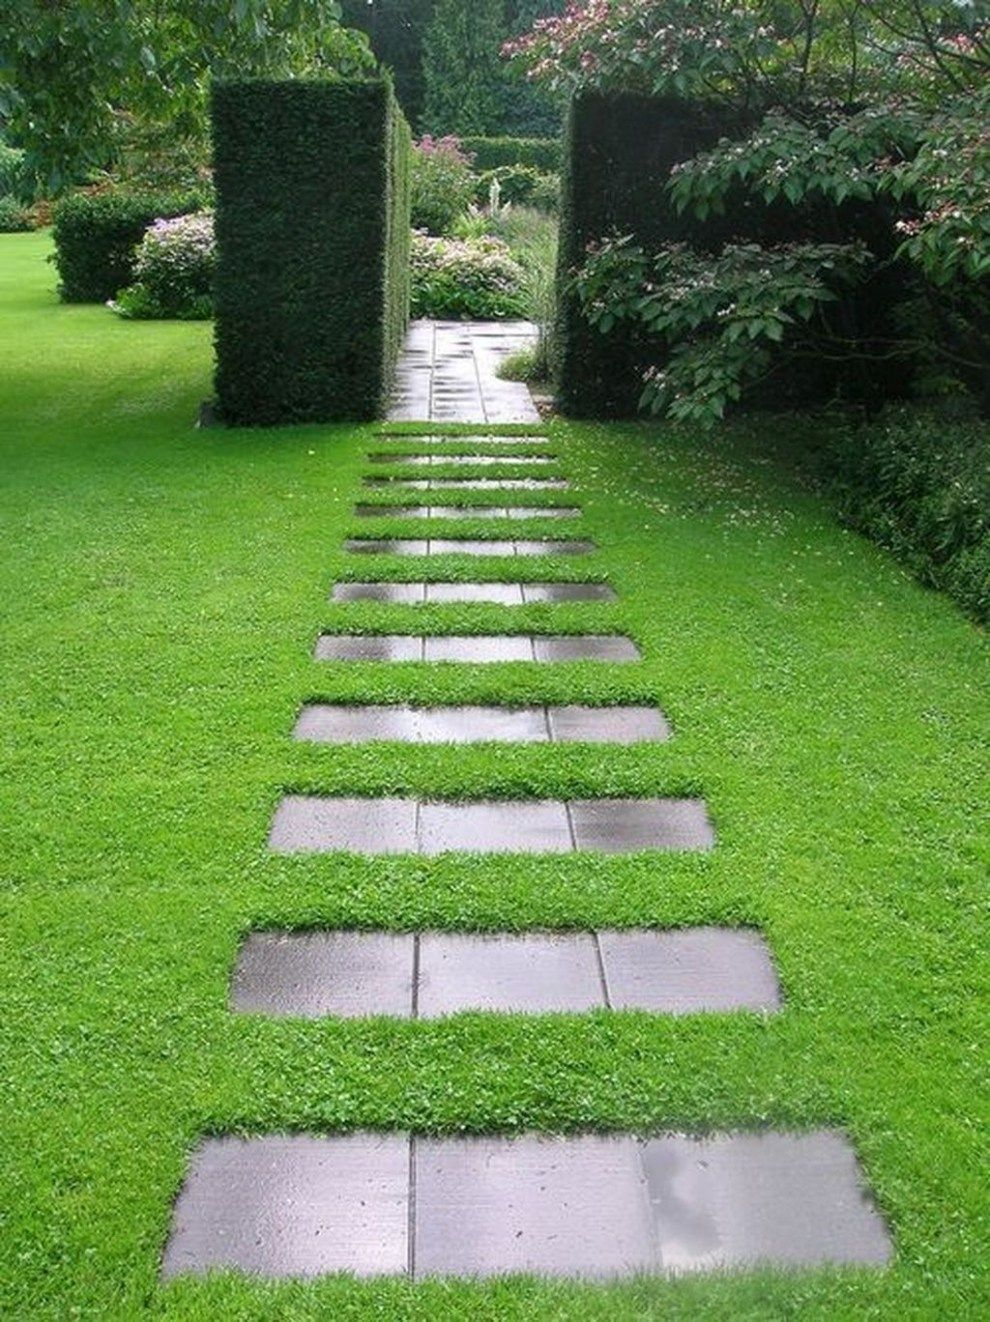 46 Inspiring Stepping Stones Pathway Ideas For Your Garden #steppingstonespathway Inspiring Stepping Stones Pathway Ideas For Your Garden 37 #steppingstonespathway 46 Inspiring Stepping Stones Pathway Ideas For Your Garden #steppingstonespathway Inspiring Stepping Stones Pathway Ideas For Your Garden 37 #steppingstonespathway 46 Inspiring Stepping Stones Pathway Ideas For Your Garden #steppingstonespathway Inspiring Stepping Stones Pathway Ideas For Your Garden 37 #steppingstonespathway 46 Inspi #steppingstonespathway